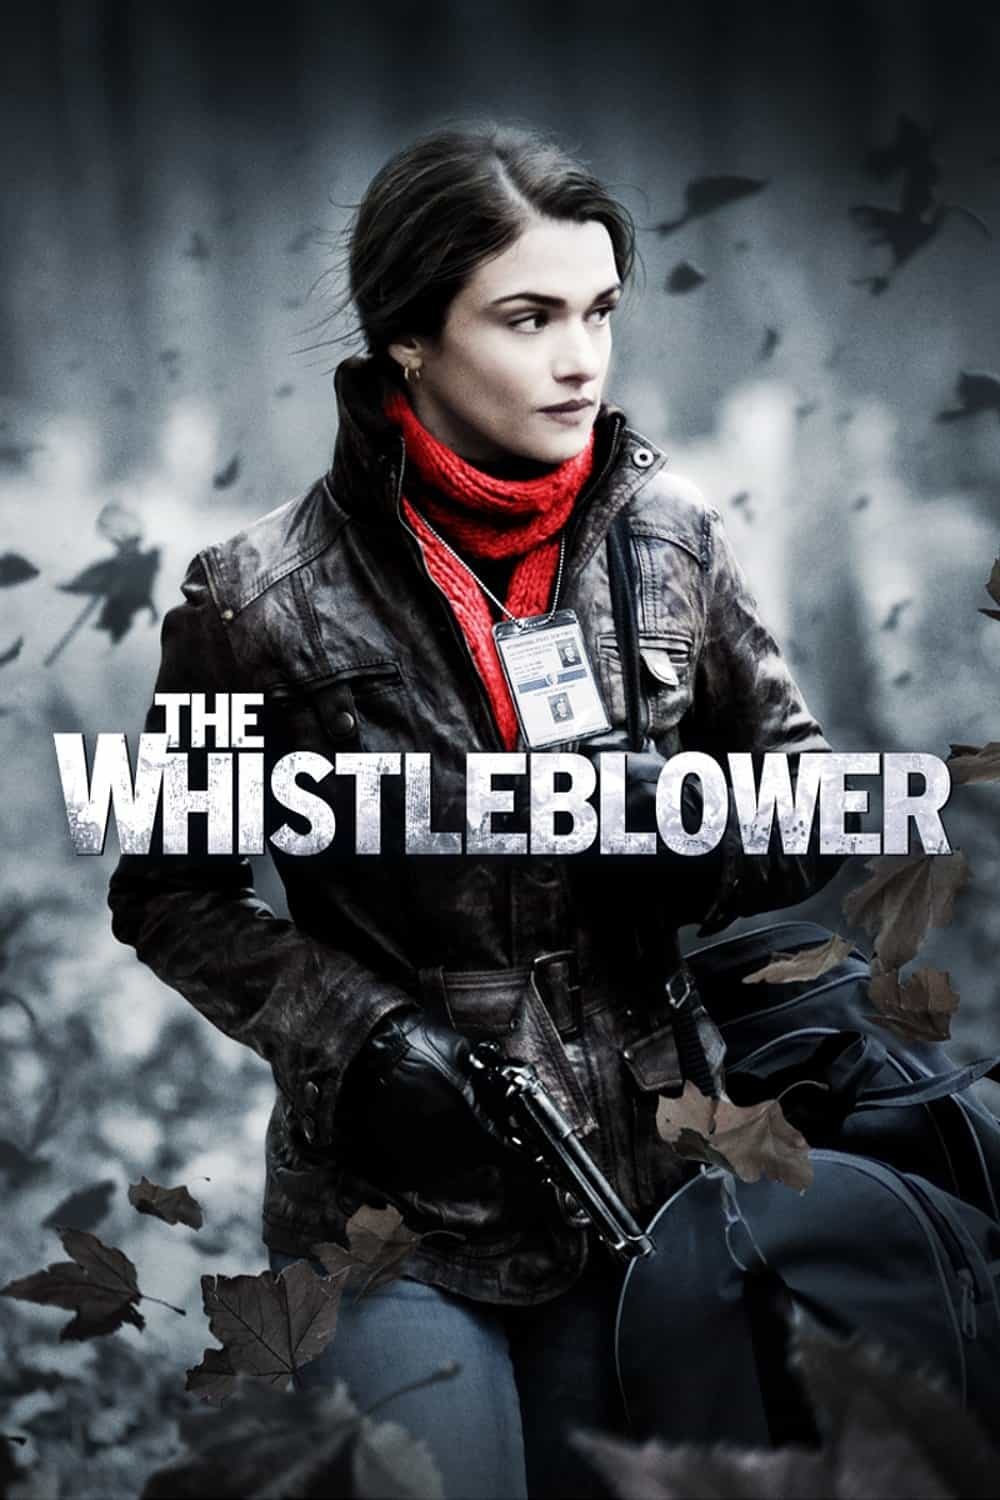 The Whistleblower, 2010